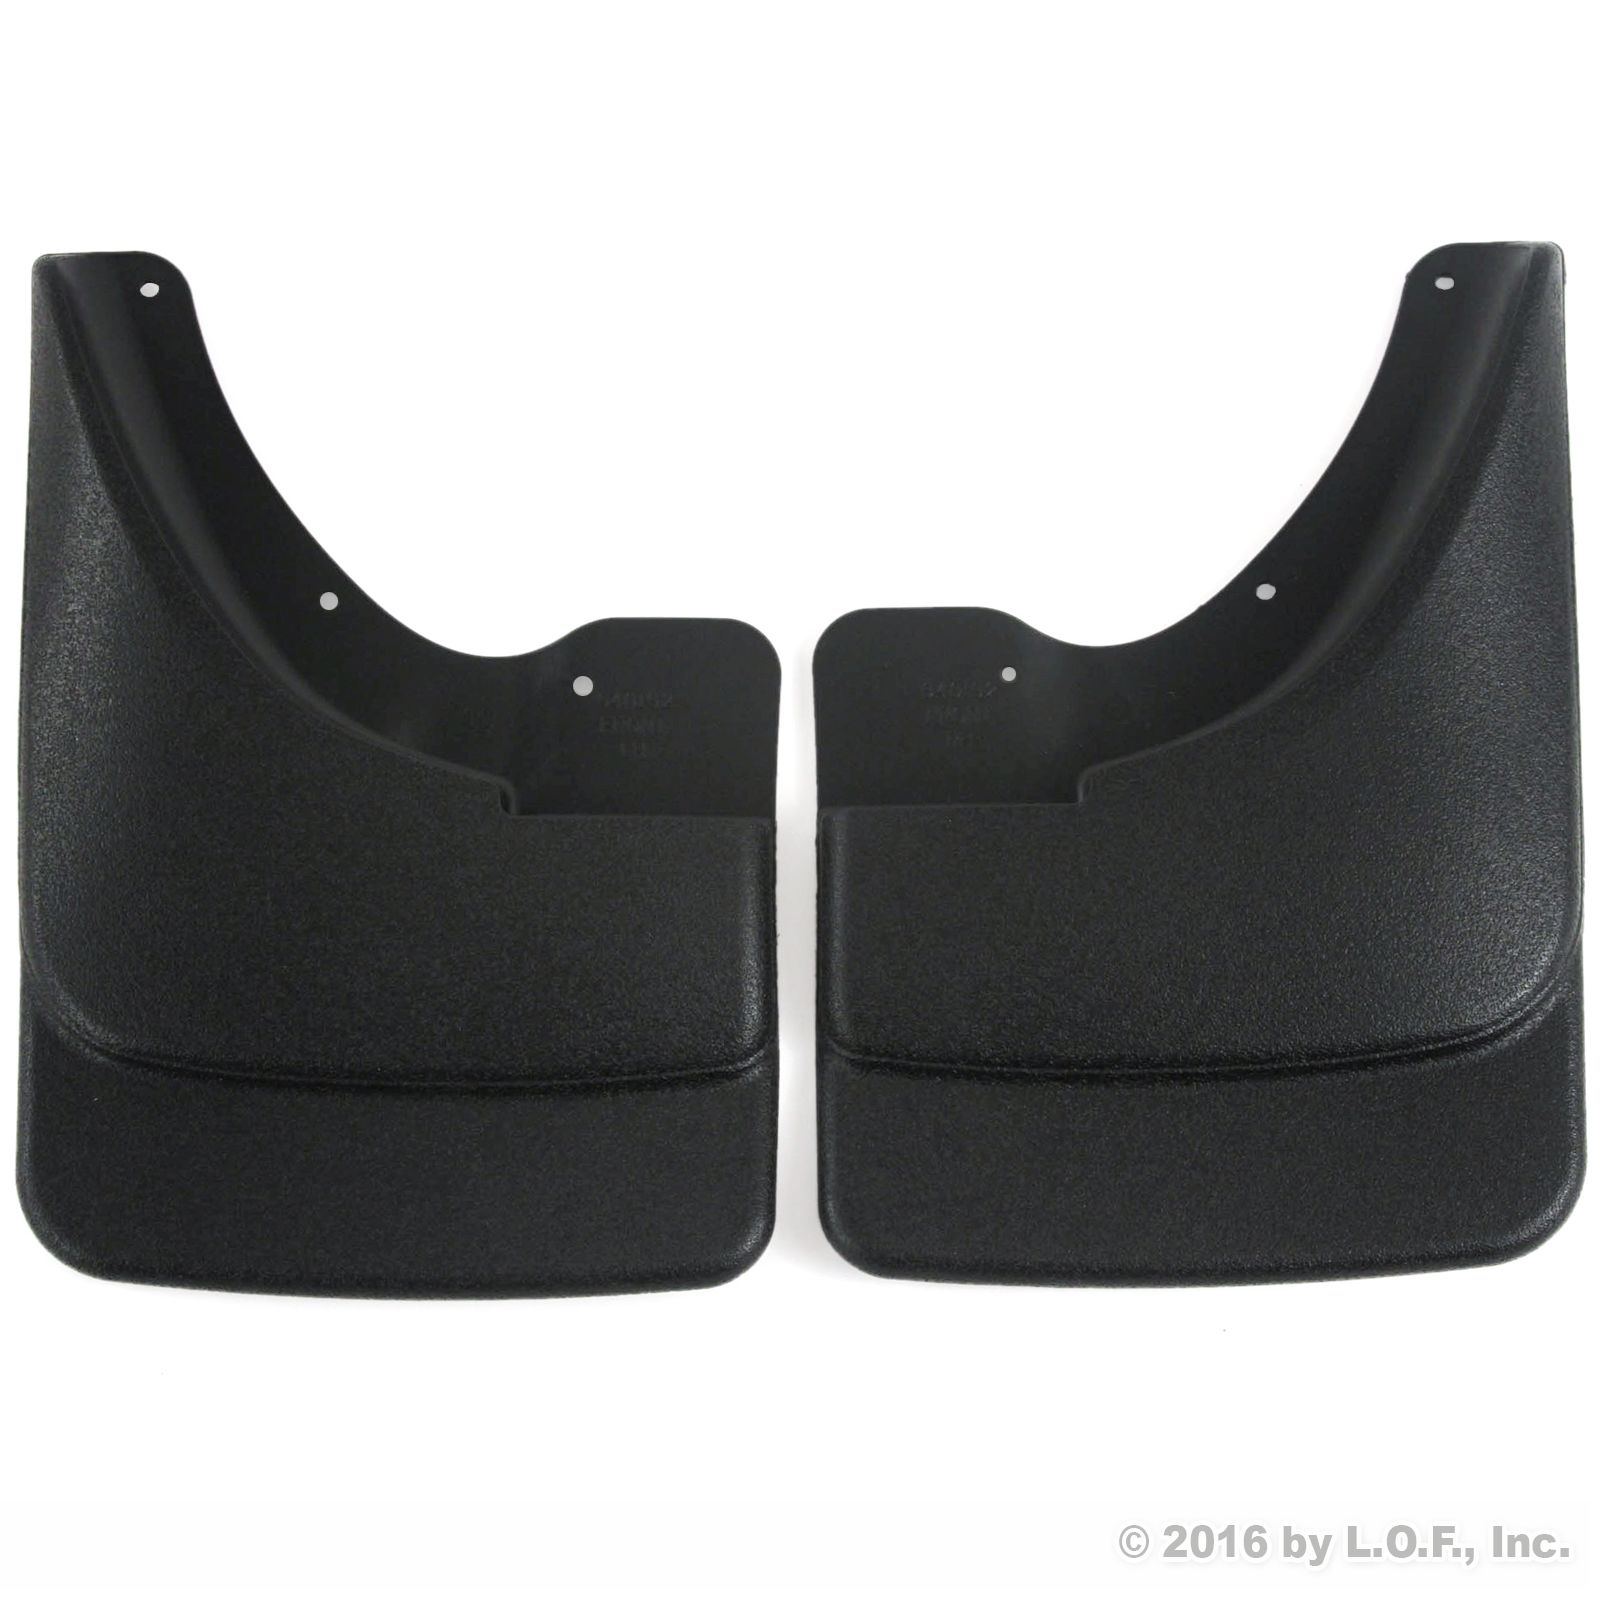 2002-2008 Dodge Ram 1500 Mud Flaps Guards Splash Front Molded 2pc Set (Without Fender Flares) by Red Hound Auto